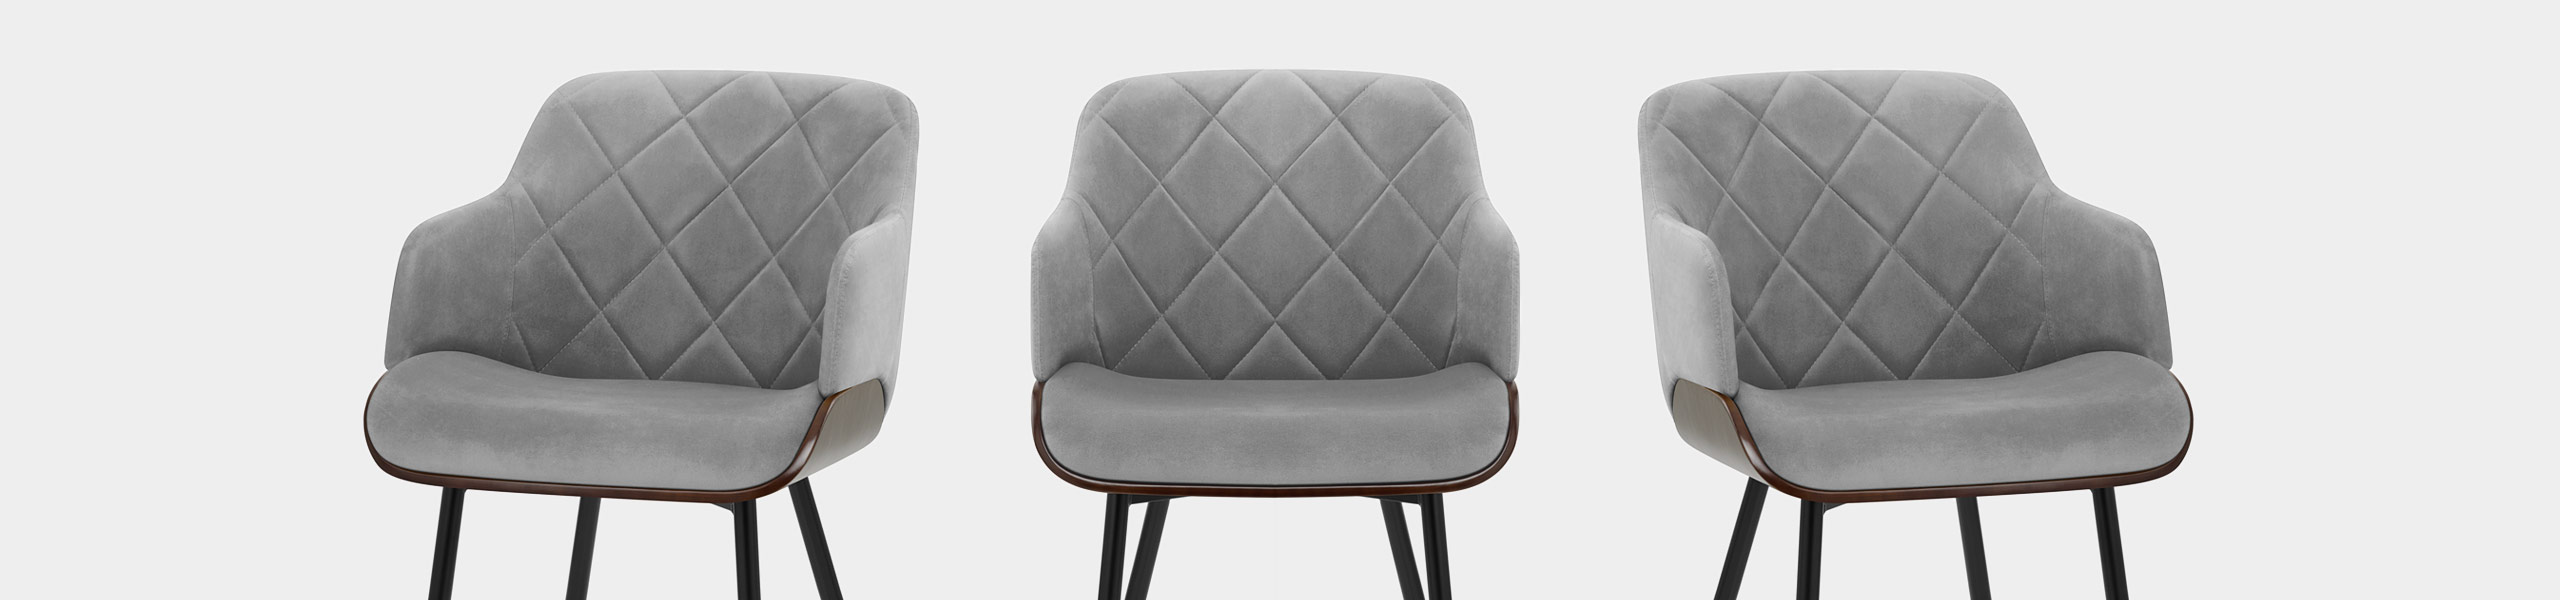 Dakota Dining Chair Grey Velvet Video Banner